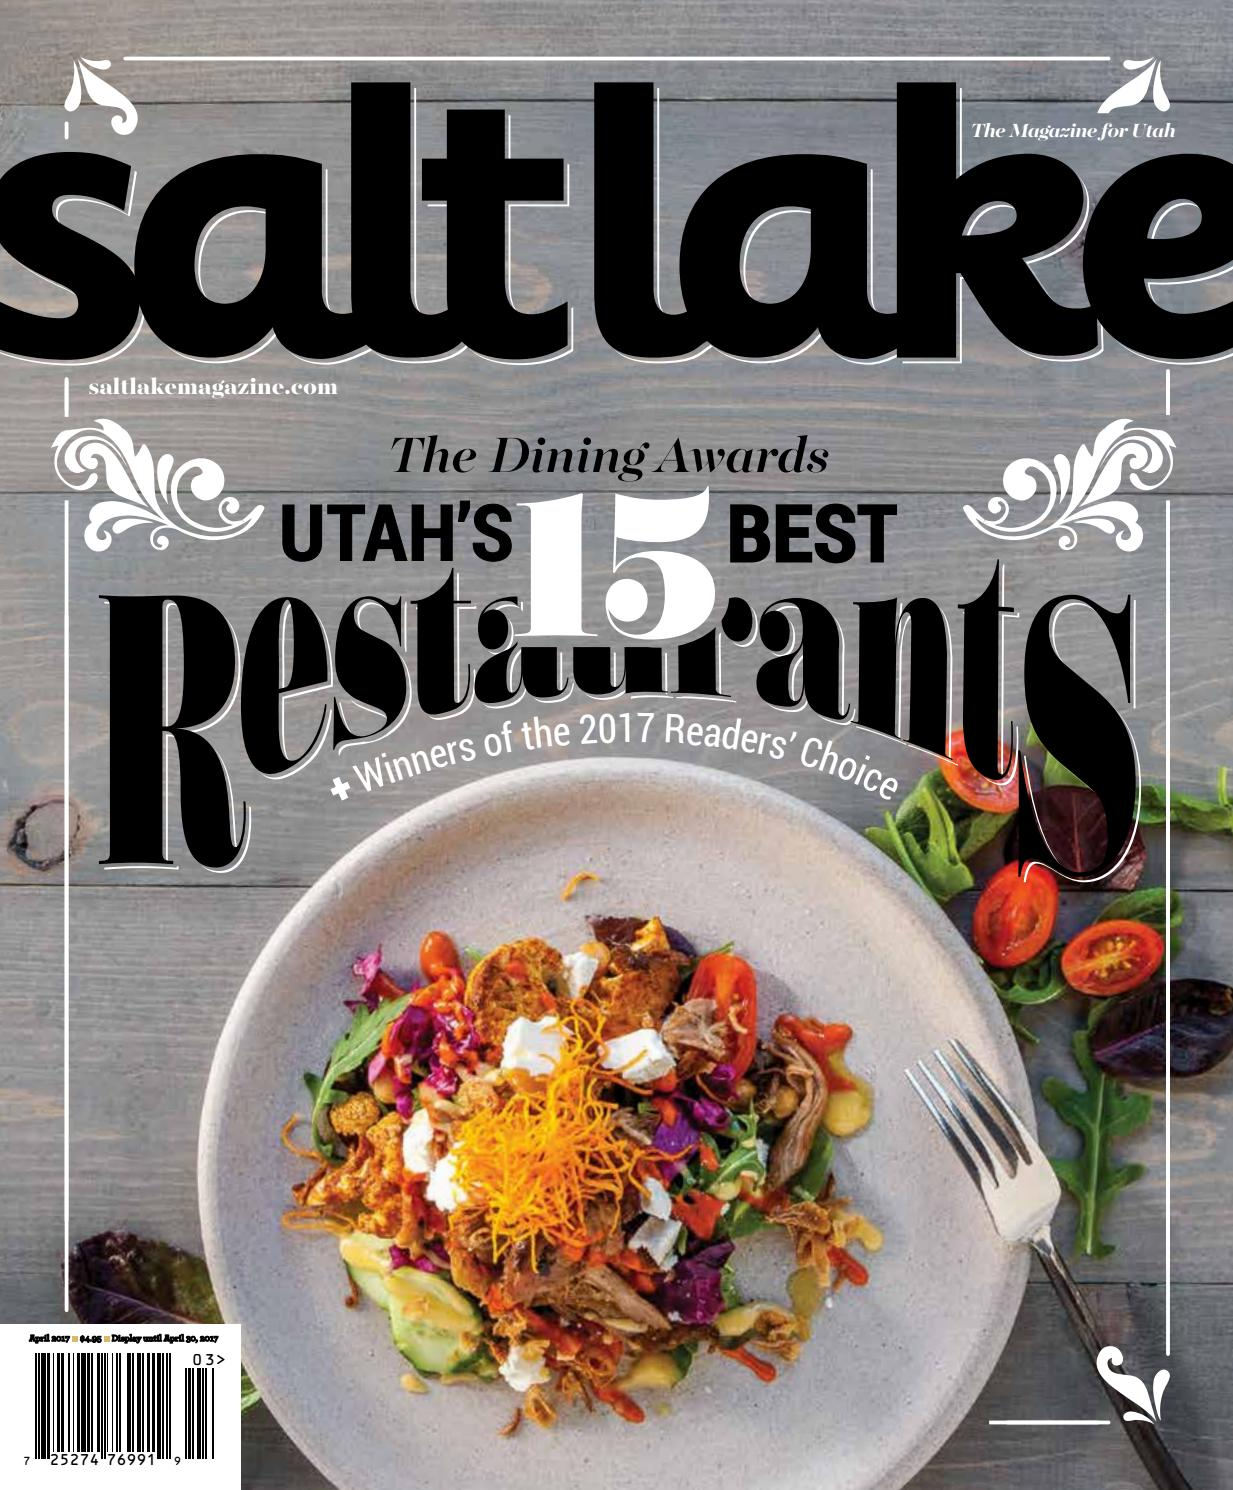 Umani Cucina Food Truck Utah Salt Lake Magazine March April 2017